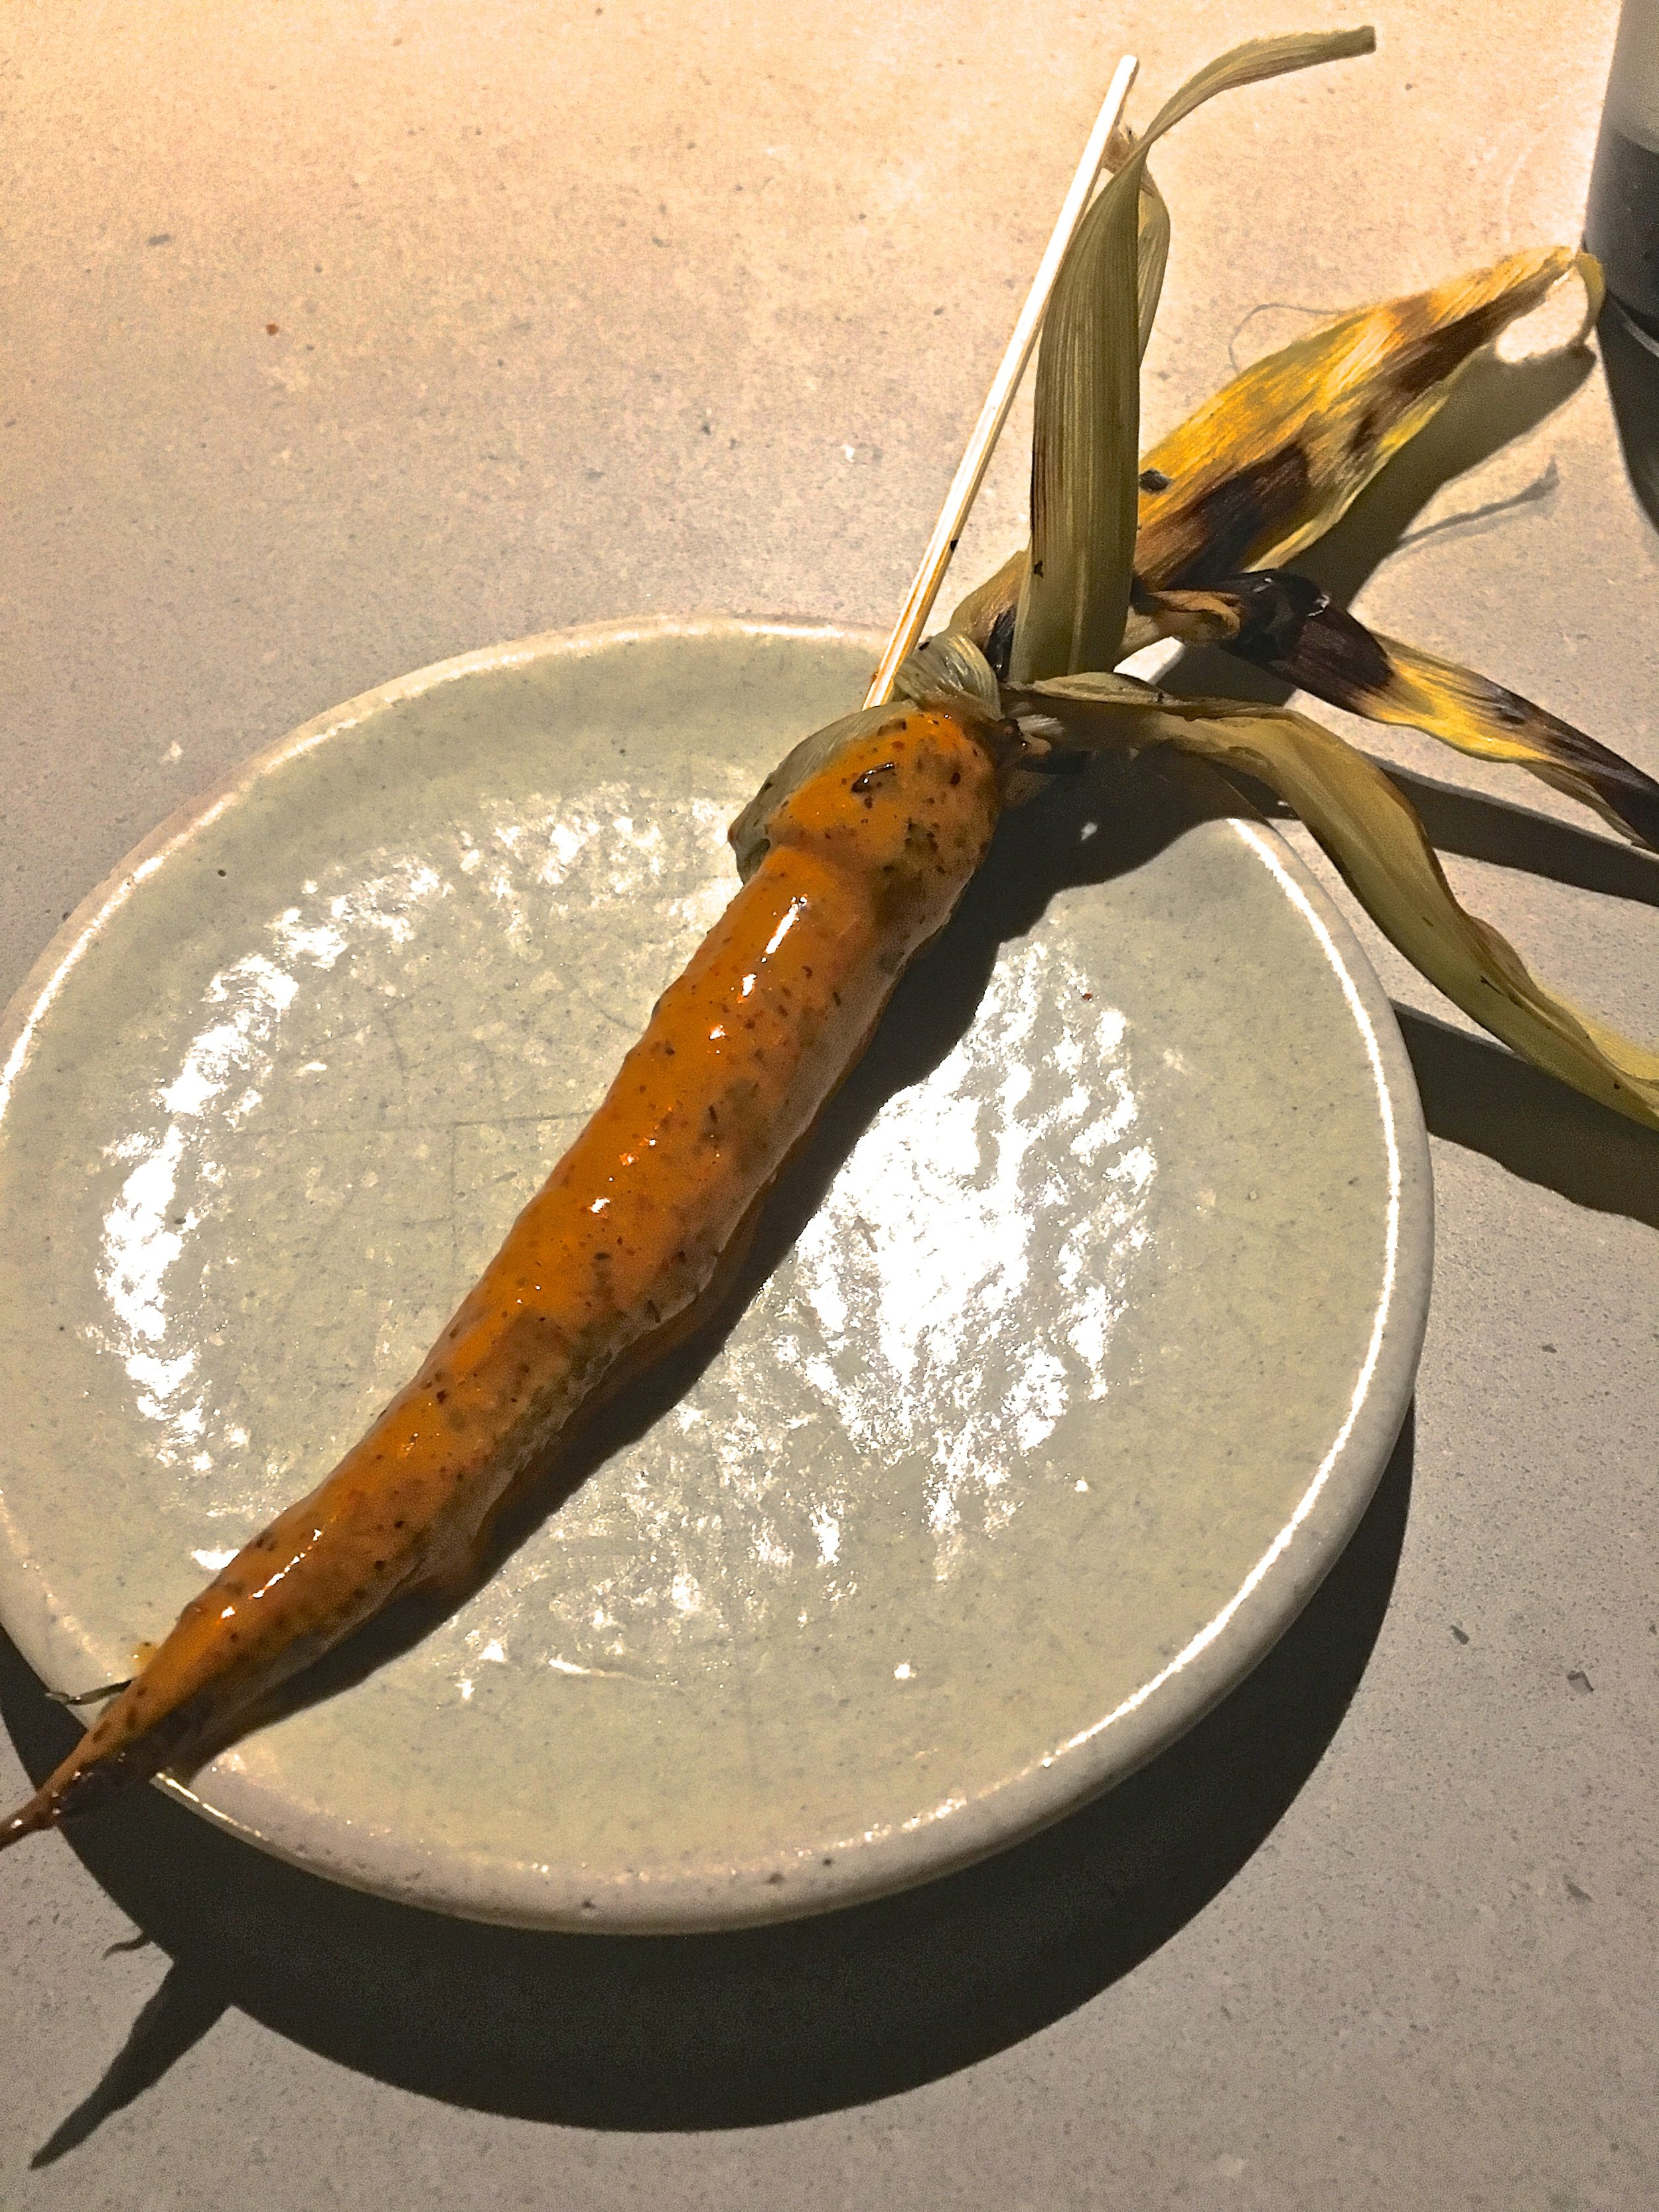 Elote dipped in a sauce made of ground ants. Yes, you read that correctly.